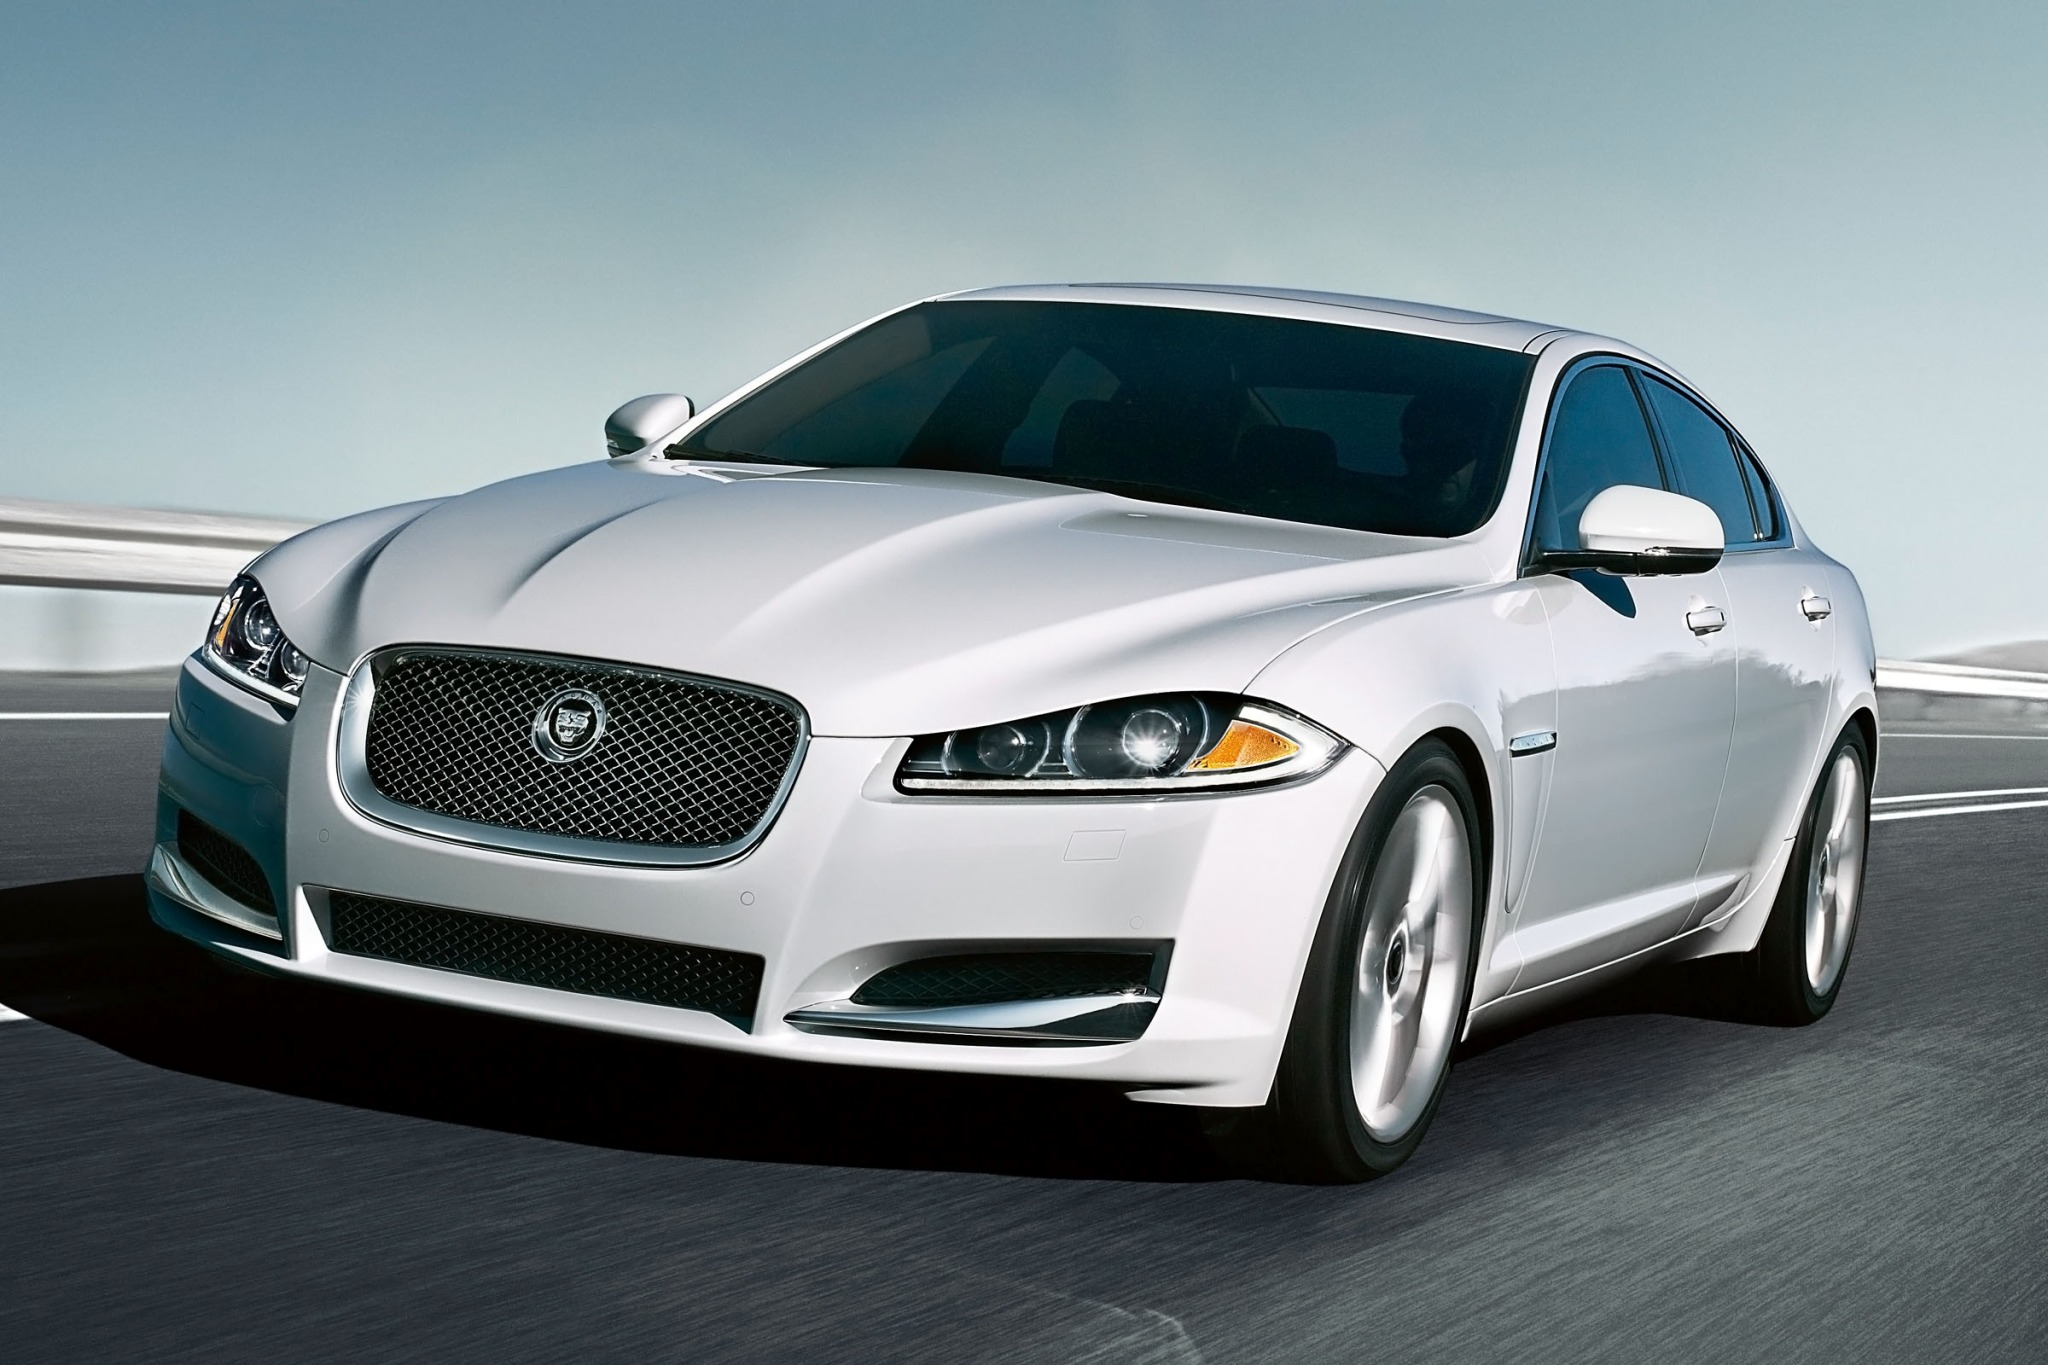 2012 Jaguar XF XFR Sedan  interior #2